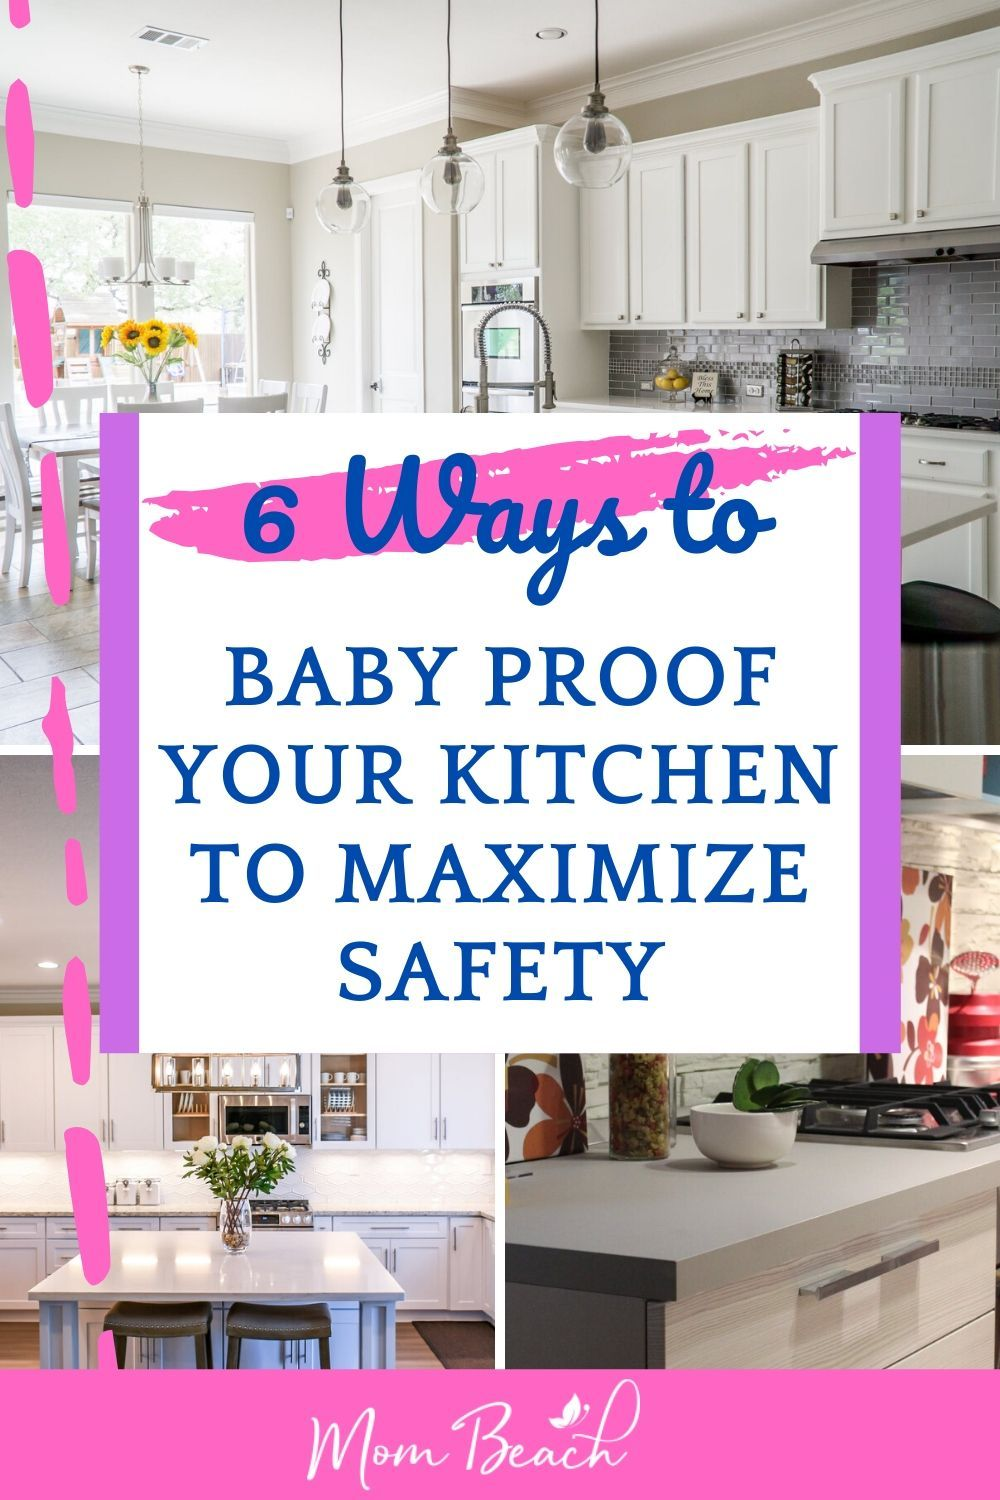 How To Baby Proof Your Kitchen To Maximize Safety In 2020 Baby Proofing Baby Proofing Kitchen Baby Proofing Hacks